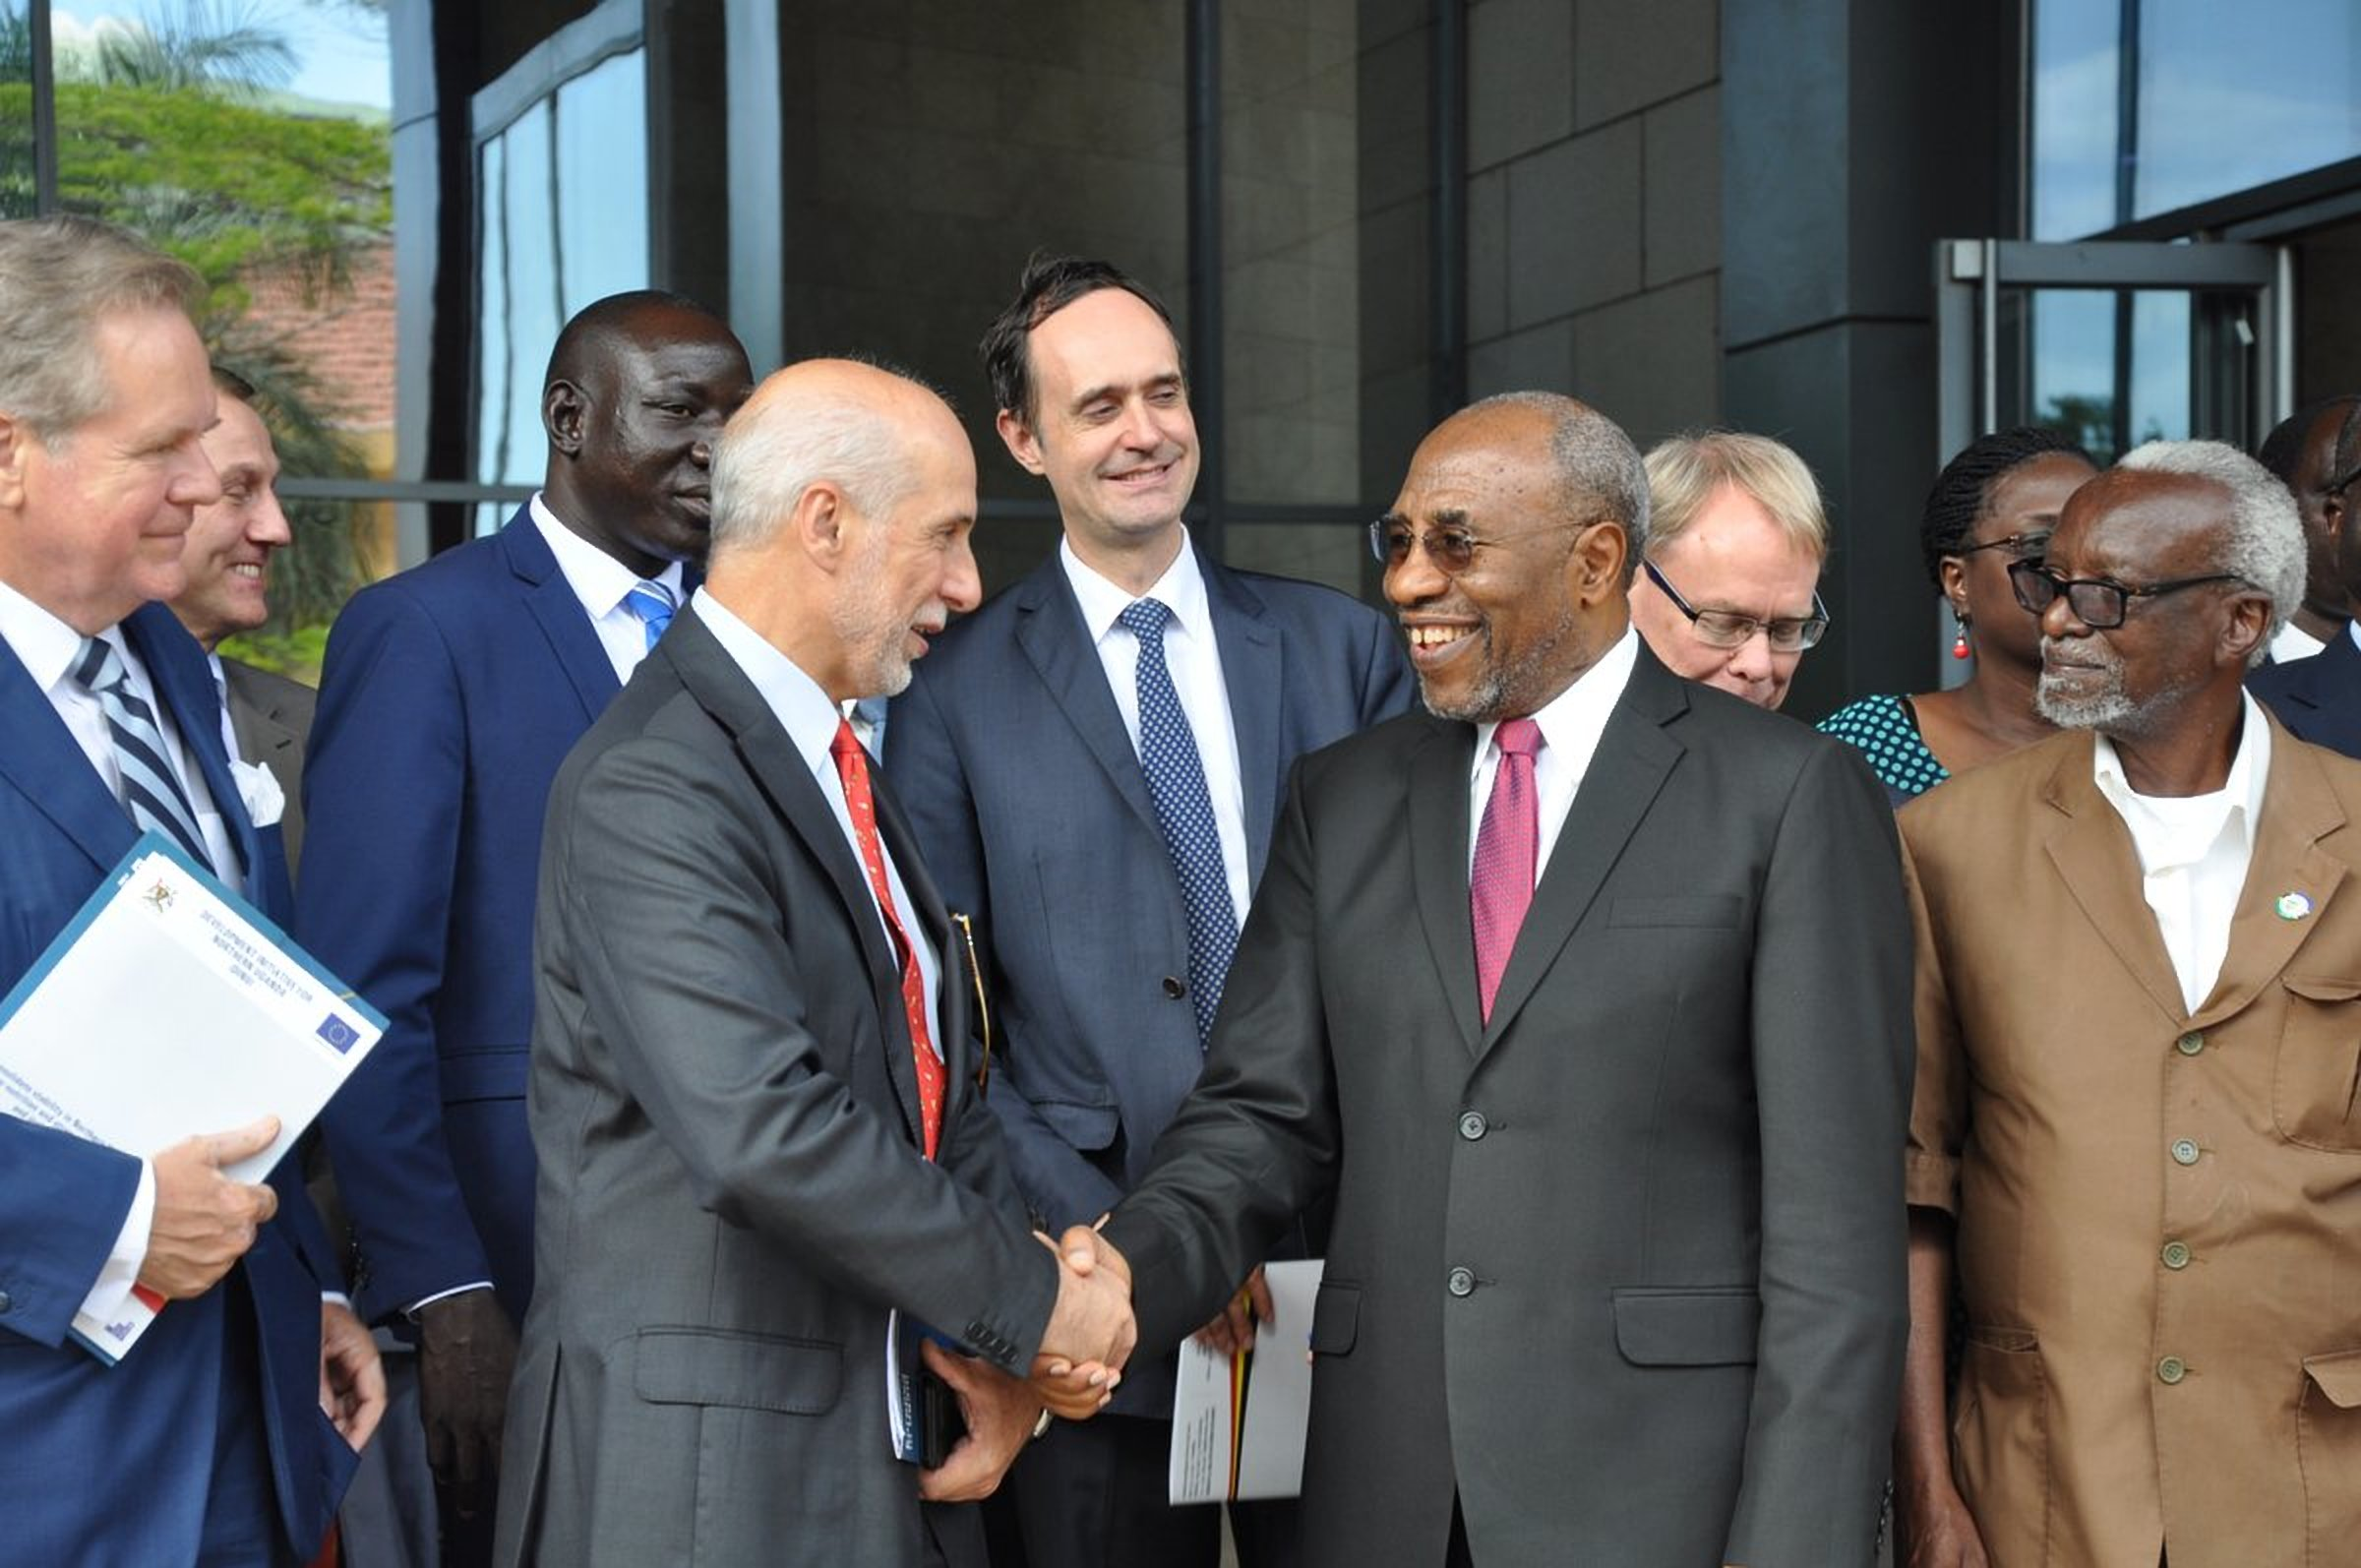 EU Ambassador to Uganda Mr Attilio Pacifici shares a light moment with Prime Minister, Hon. Ruhakana Rugunda at the DINU launch (COURTESY PHOTO)